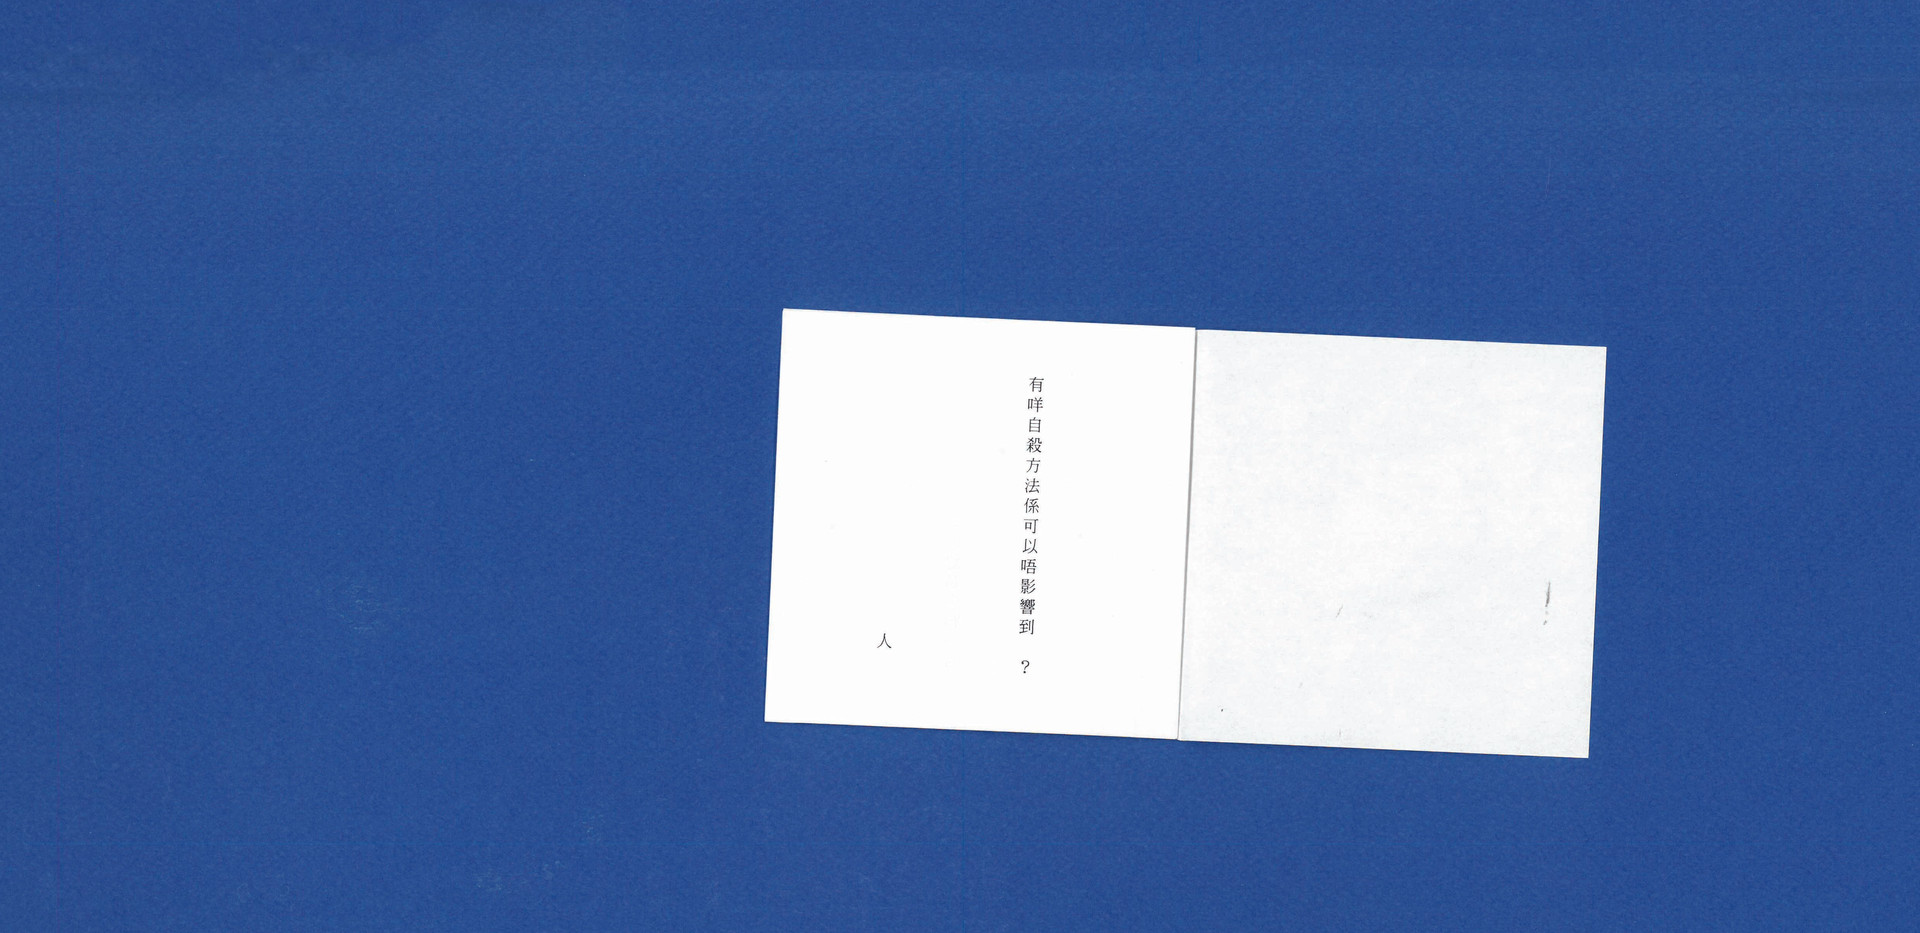 Zine of Fragebogen_scanning-2.jpg